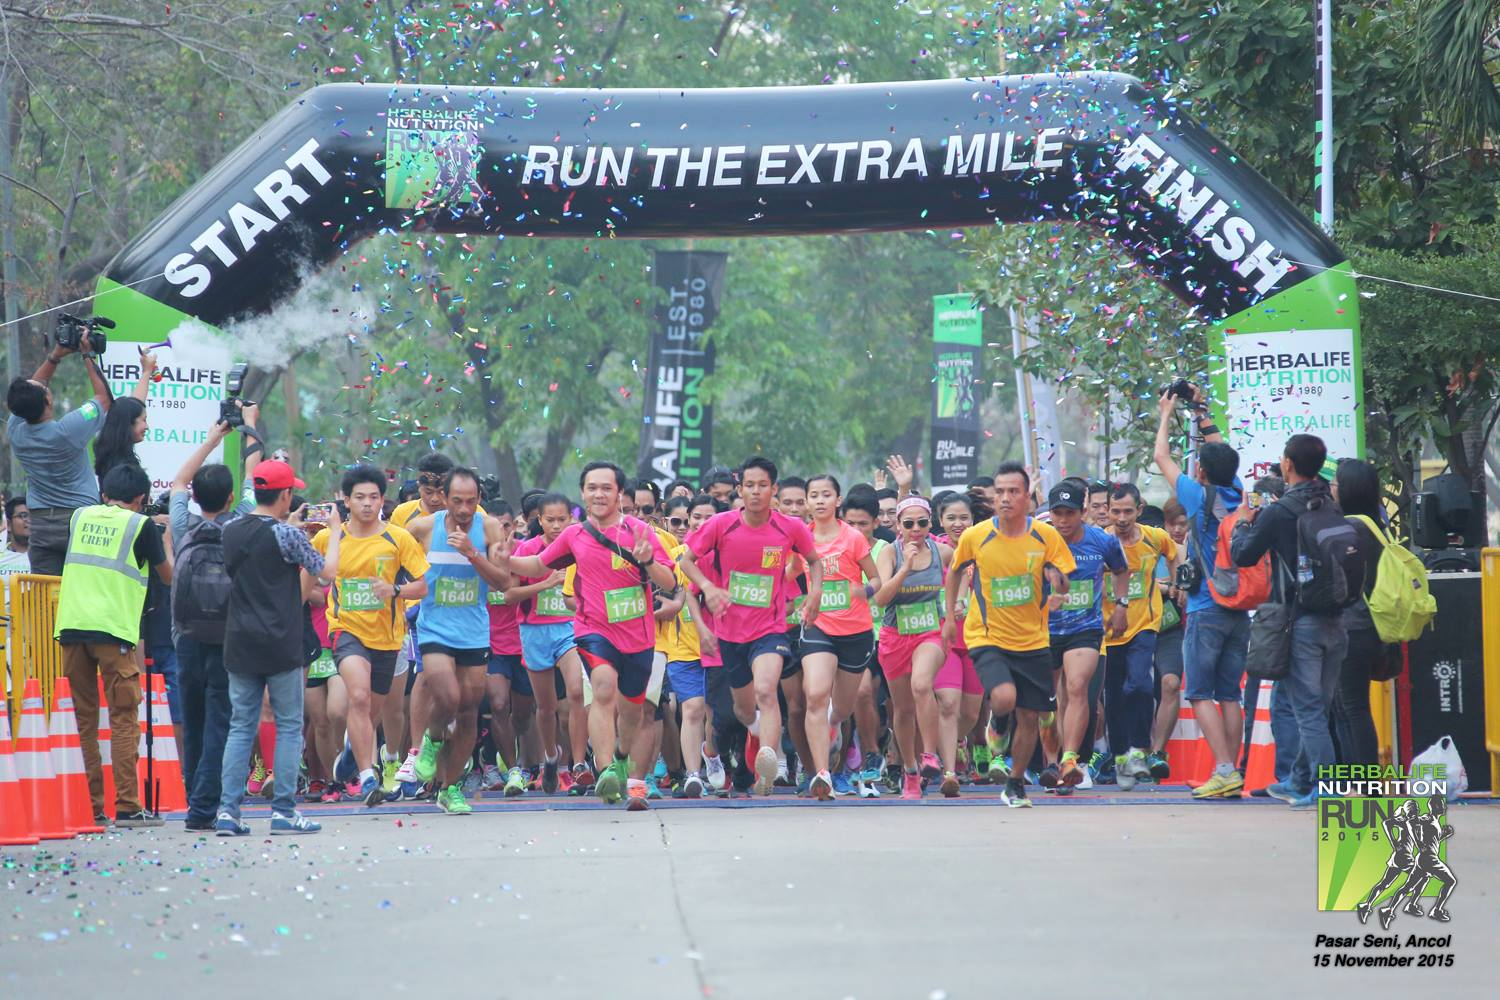 Herbalife Nutrition Run 2015